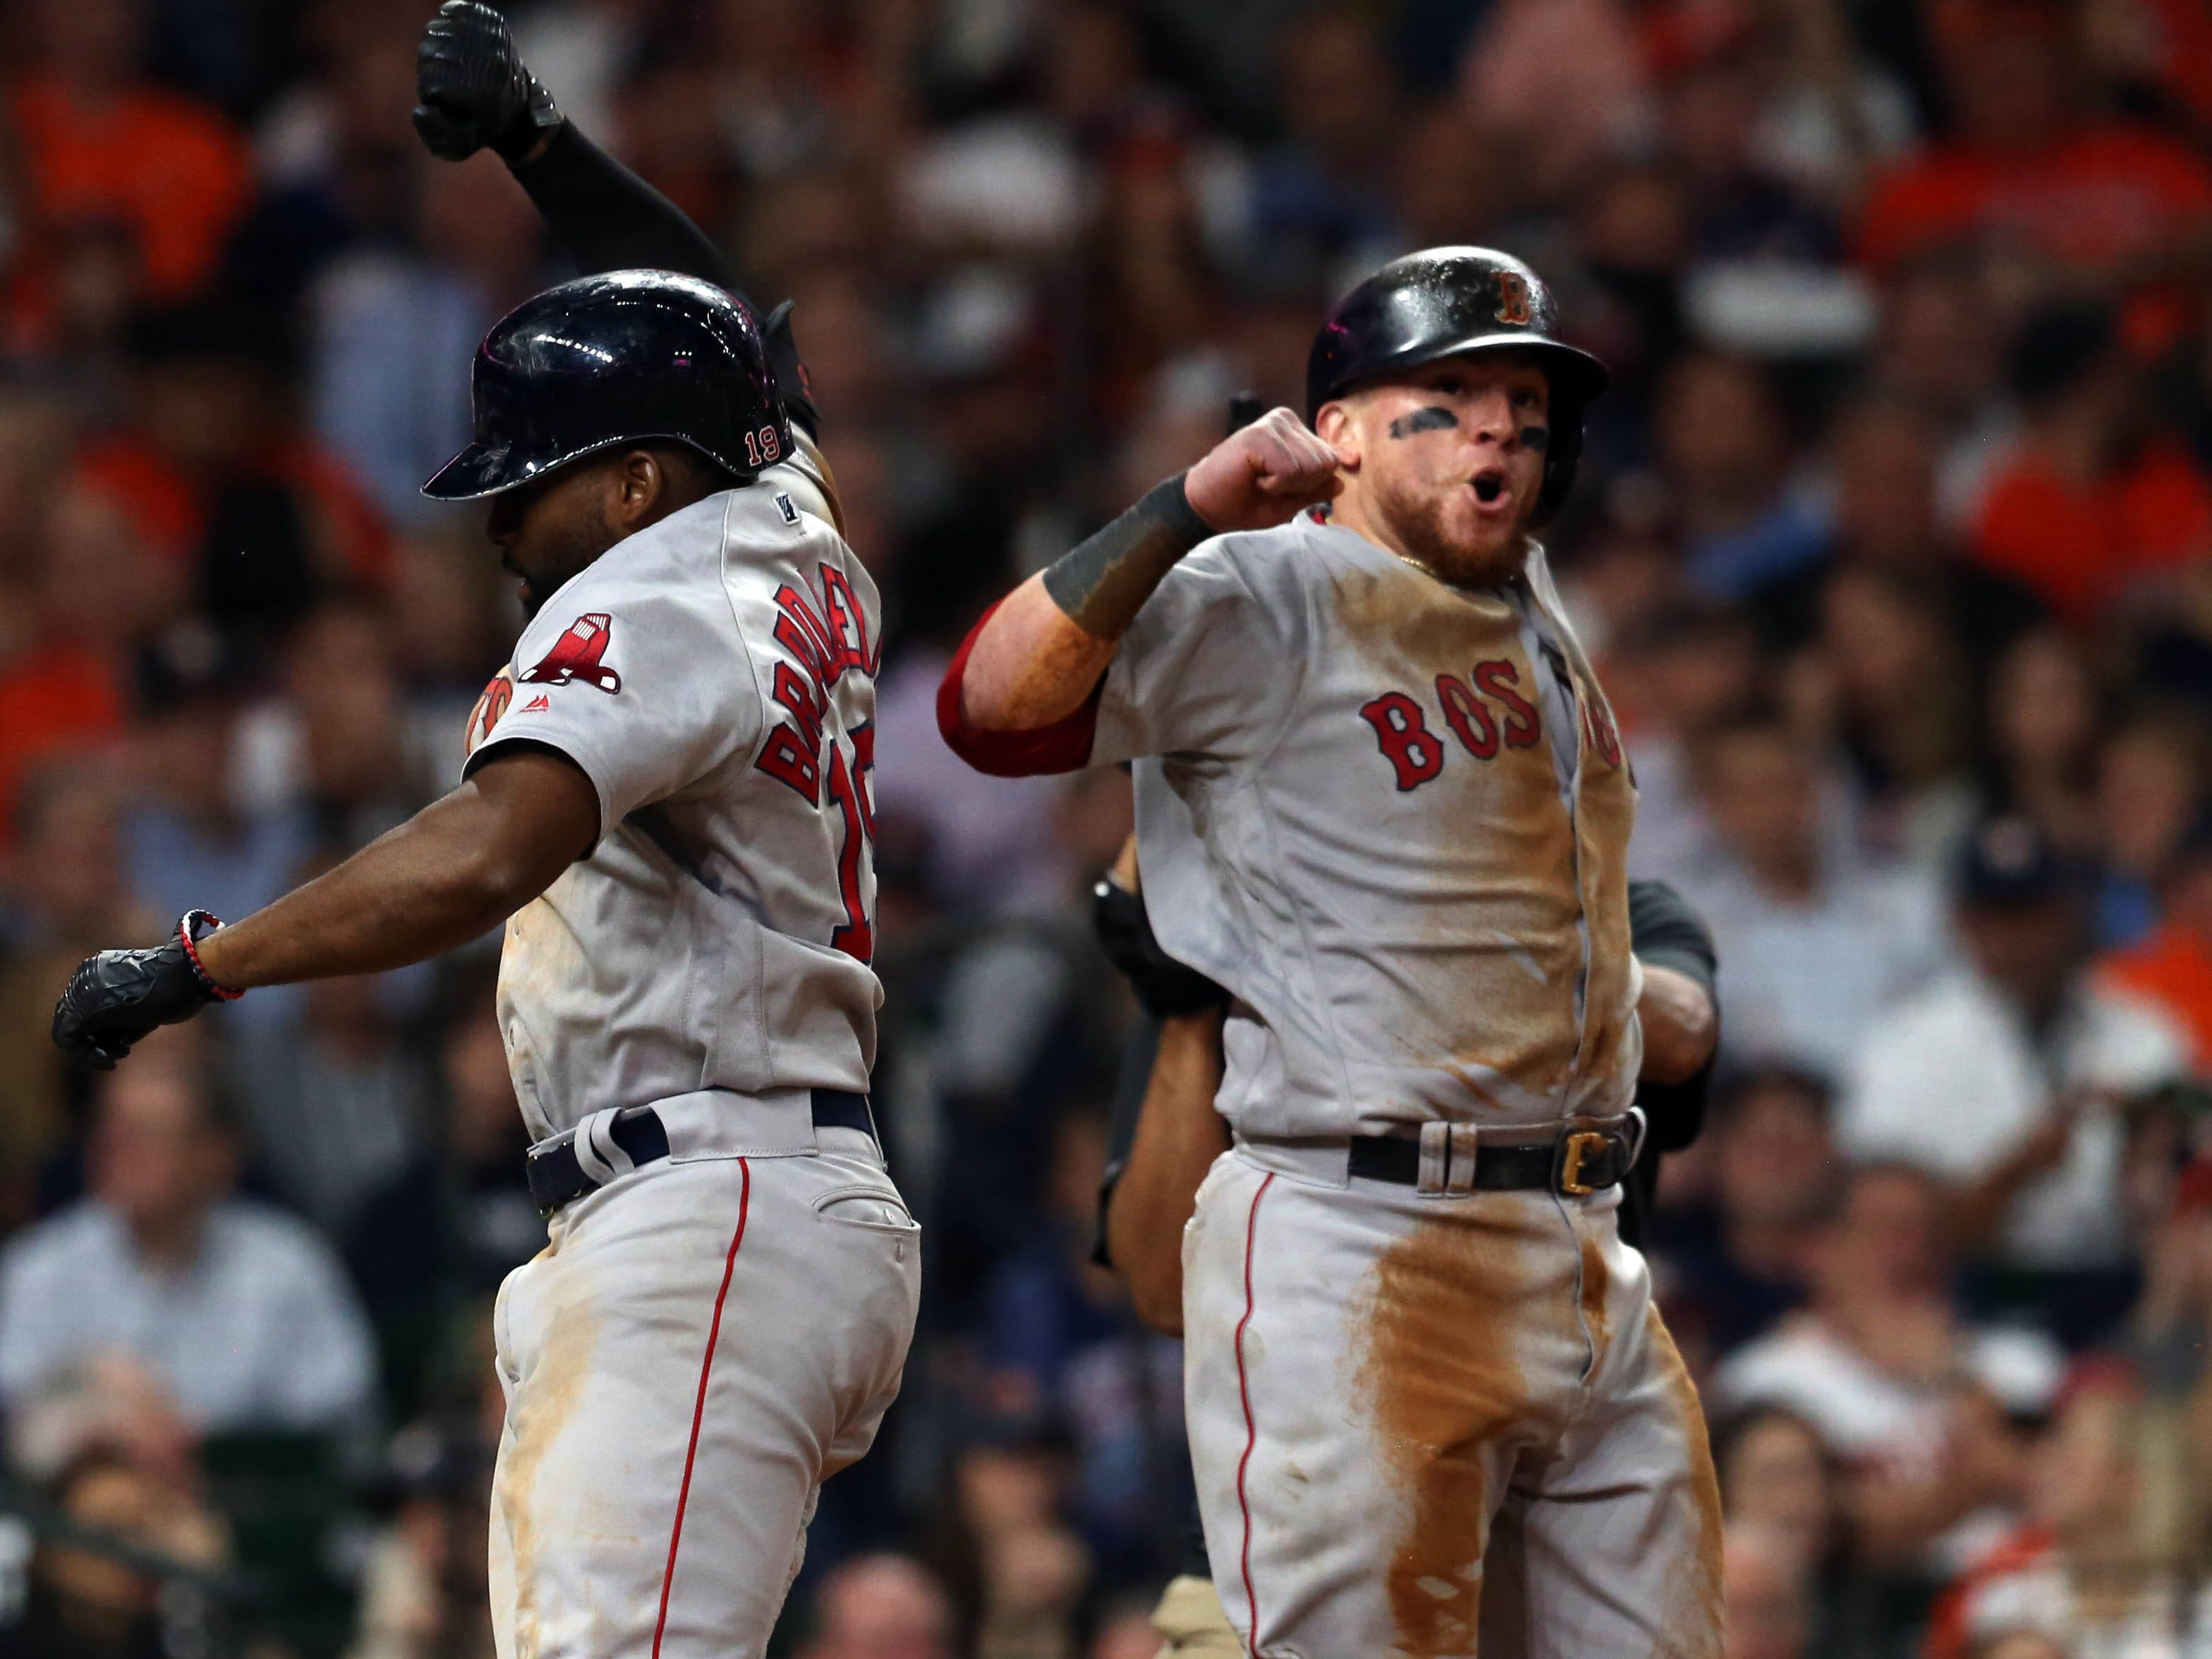 ALCS Game 4: Red Sox center fielder Jackie Bradley Jr. catcher Christian Vazquez celebrate after Bradley's two-run home run in the sixth inning.